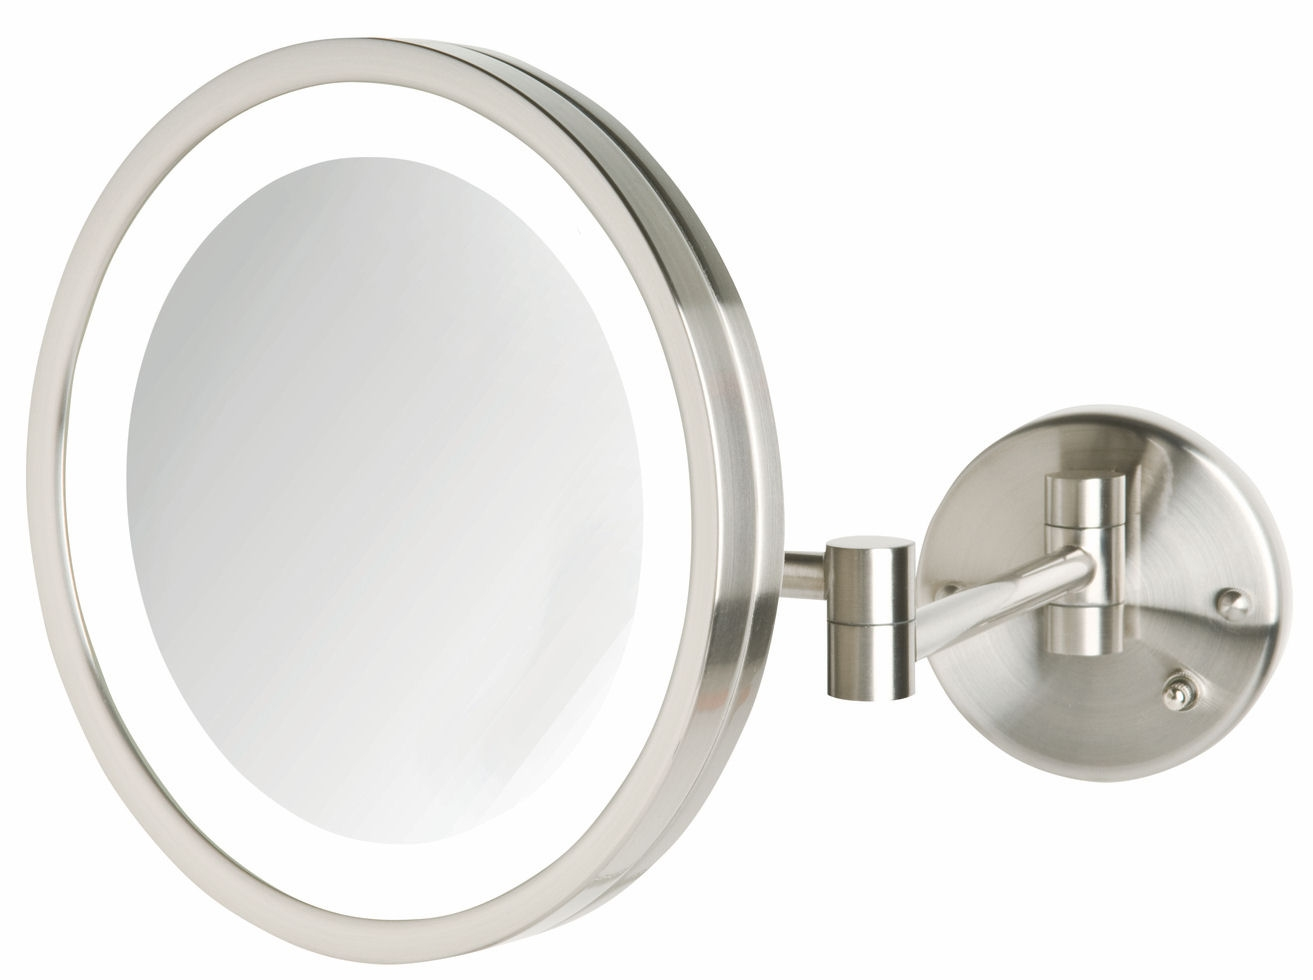 Wall Mounted Lighted Magnifying Mirror